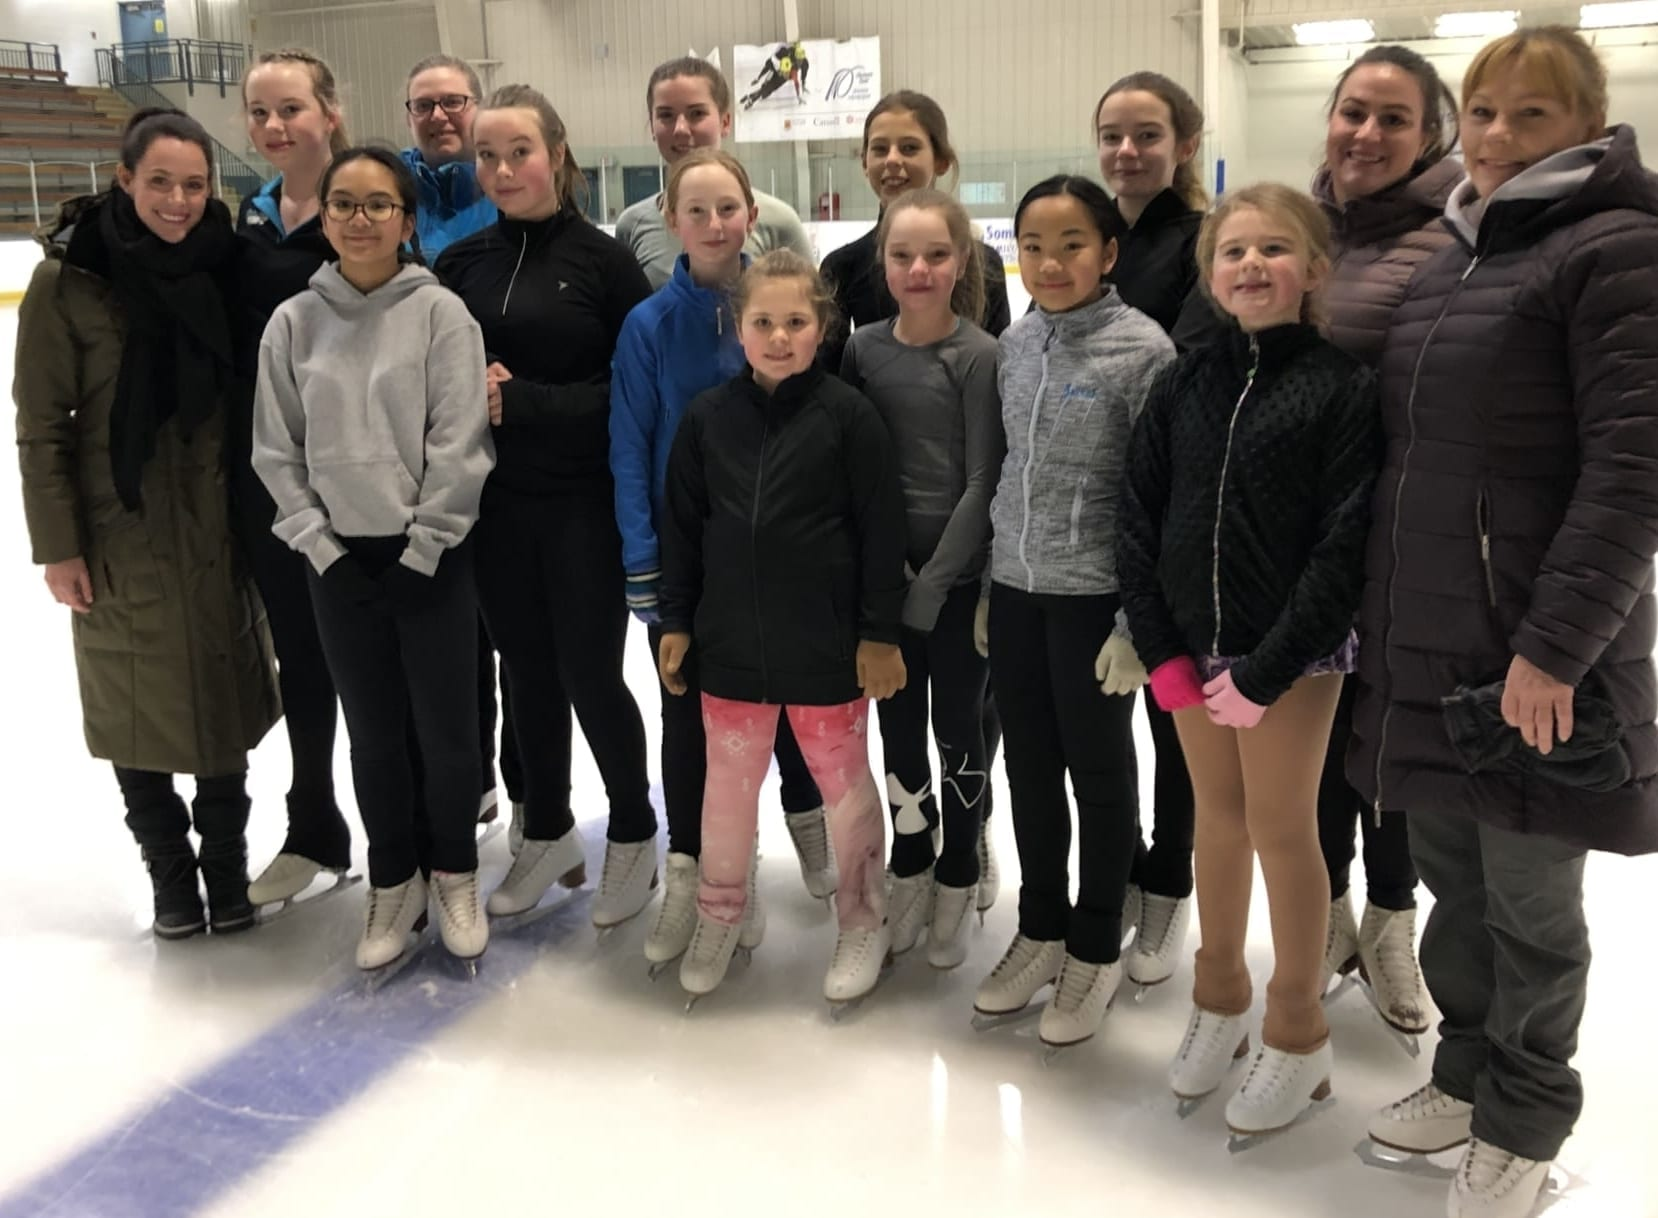 Some members of the Yk Skating Club got the chance to rub shoulders with Tessa Virtue on Sunday at the Multiplex during a practice. In the photo are, front row from left, Tessa Virtue, Janica Silviero, Julia Reid, Myah Harris, Natalie Power, Peyton Koe, Jariah Silviero, Courtney Dalton and coach Lisette Kaip; back row from left, Emily Hazenberg, coach Brenda Dalton, Victoria Hamm, Niobe Clinton, Keira Clinton and coach Tara Kaip. photo courtesy of Tara Kaip